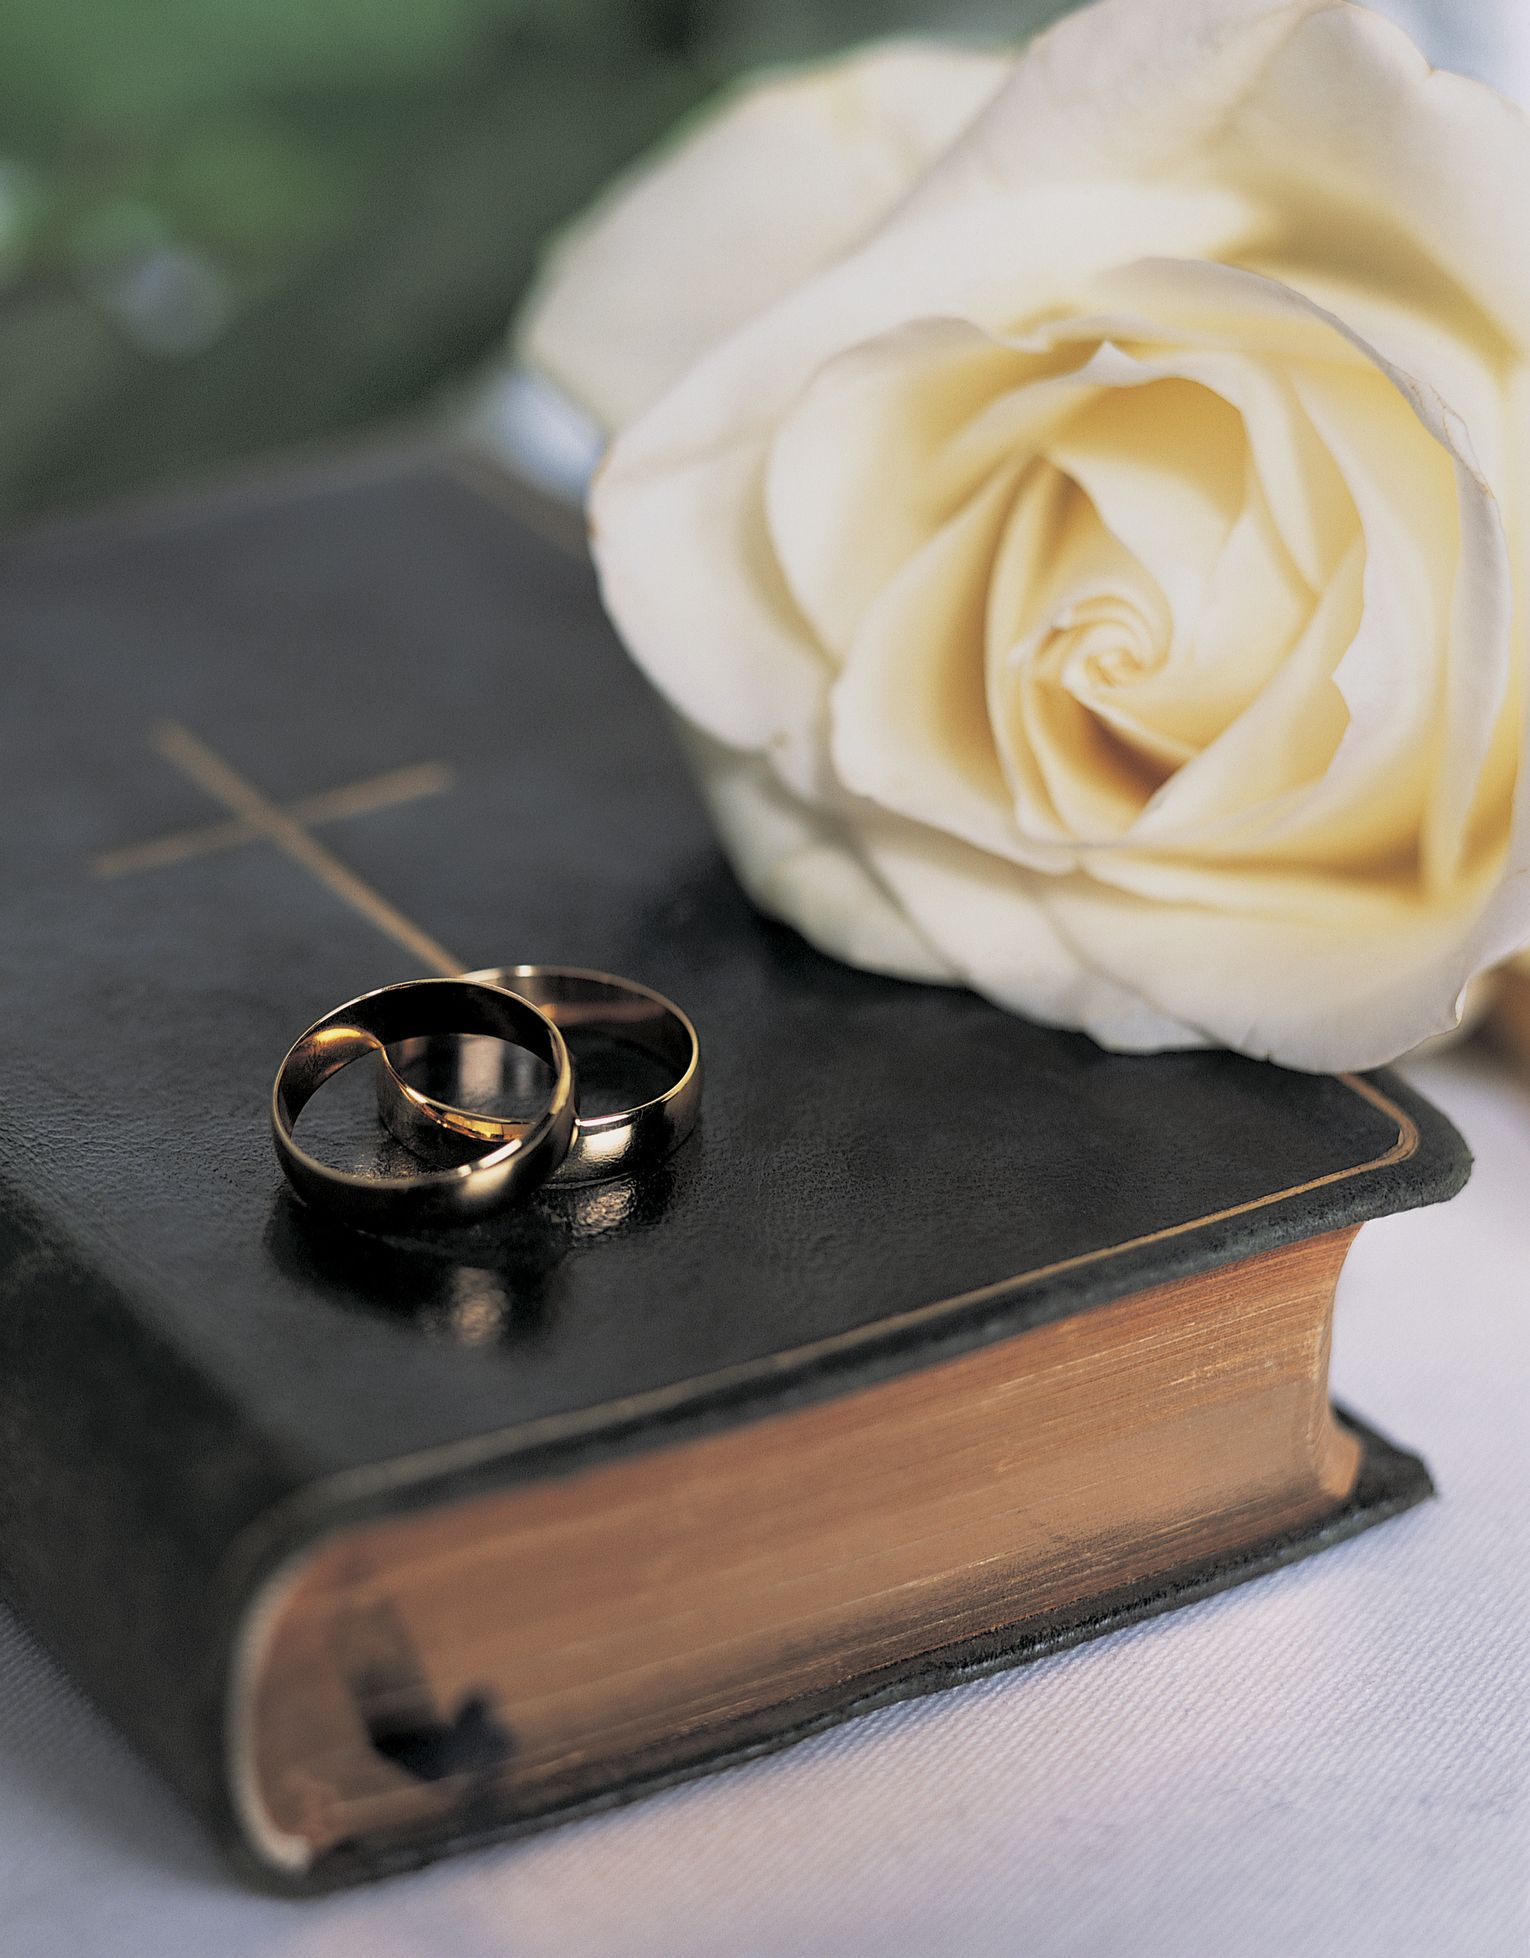 20 Bible Verses About Marriage - Best Marriage Scriptures